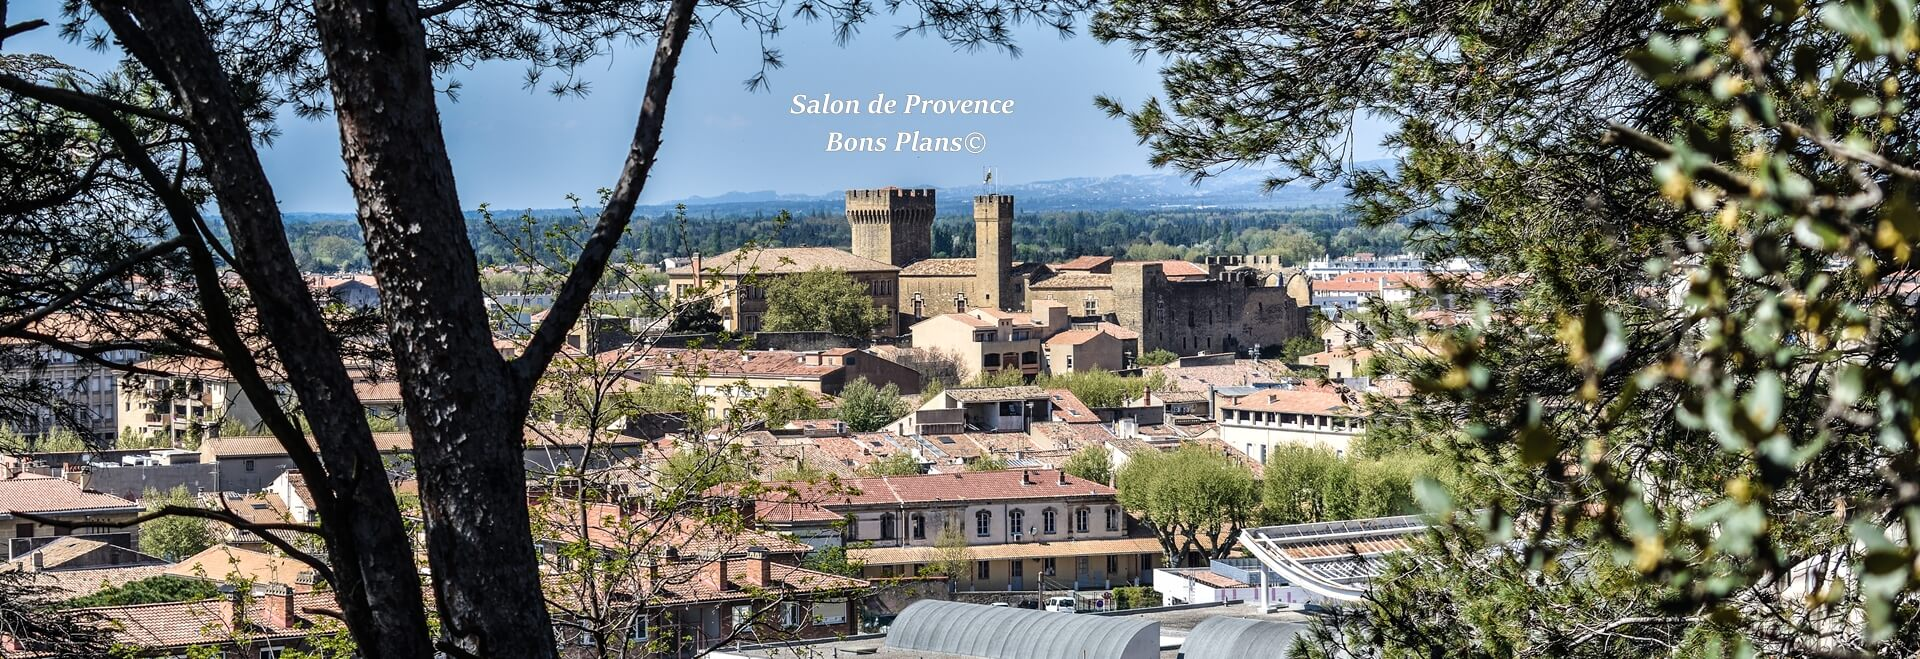 Salon de provence bons plans for Pmi salon de provence